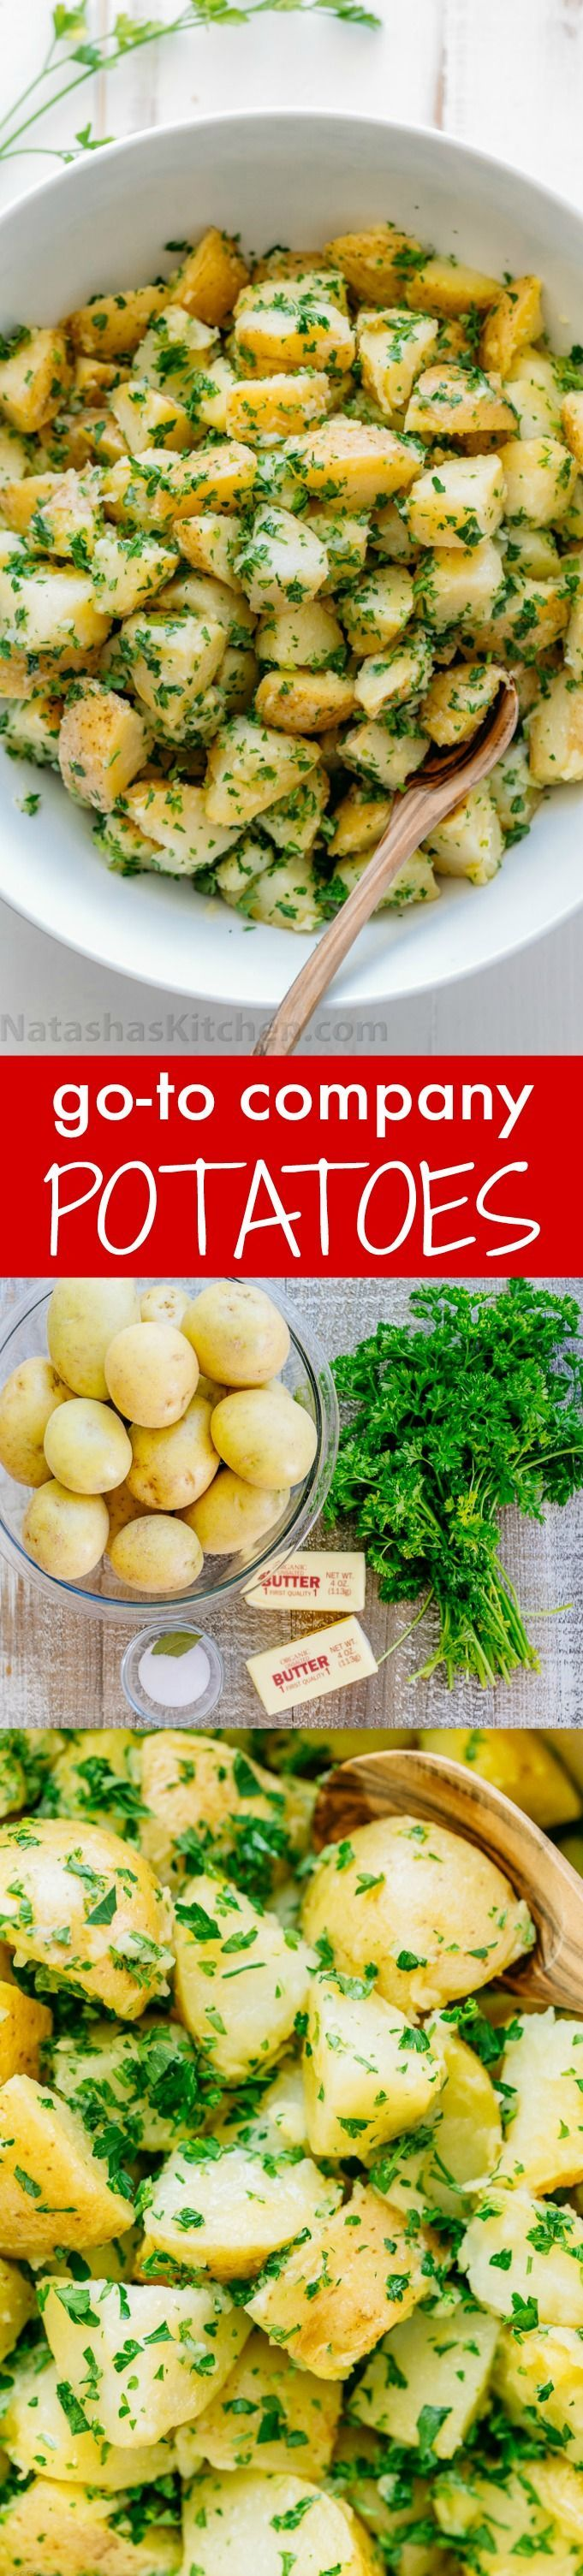 The BEST potatoes recipe is the simplest. Company potatoes always get compliments! The parsley and butter really bring out the flavor of yukon potatoes | natashaskitchen.com